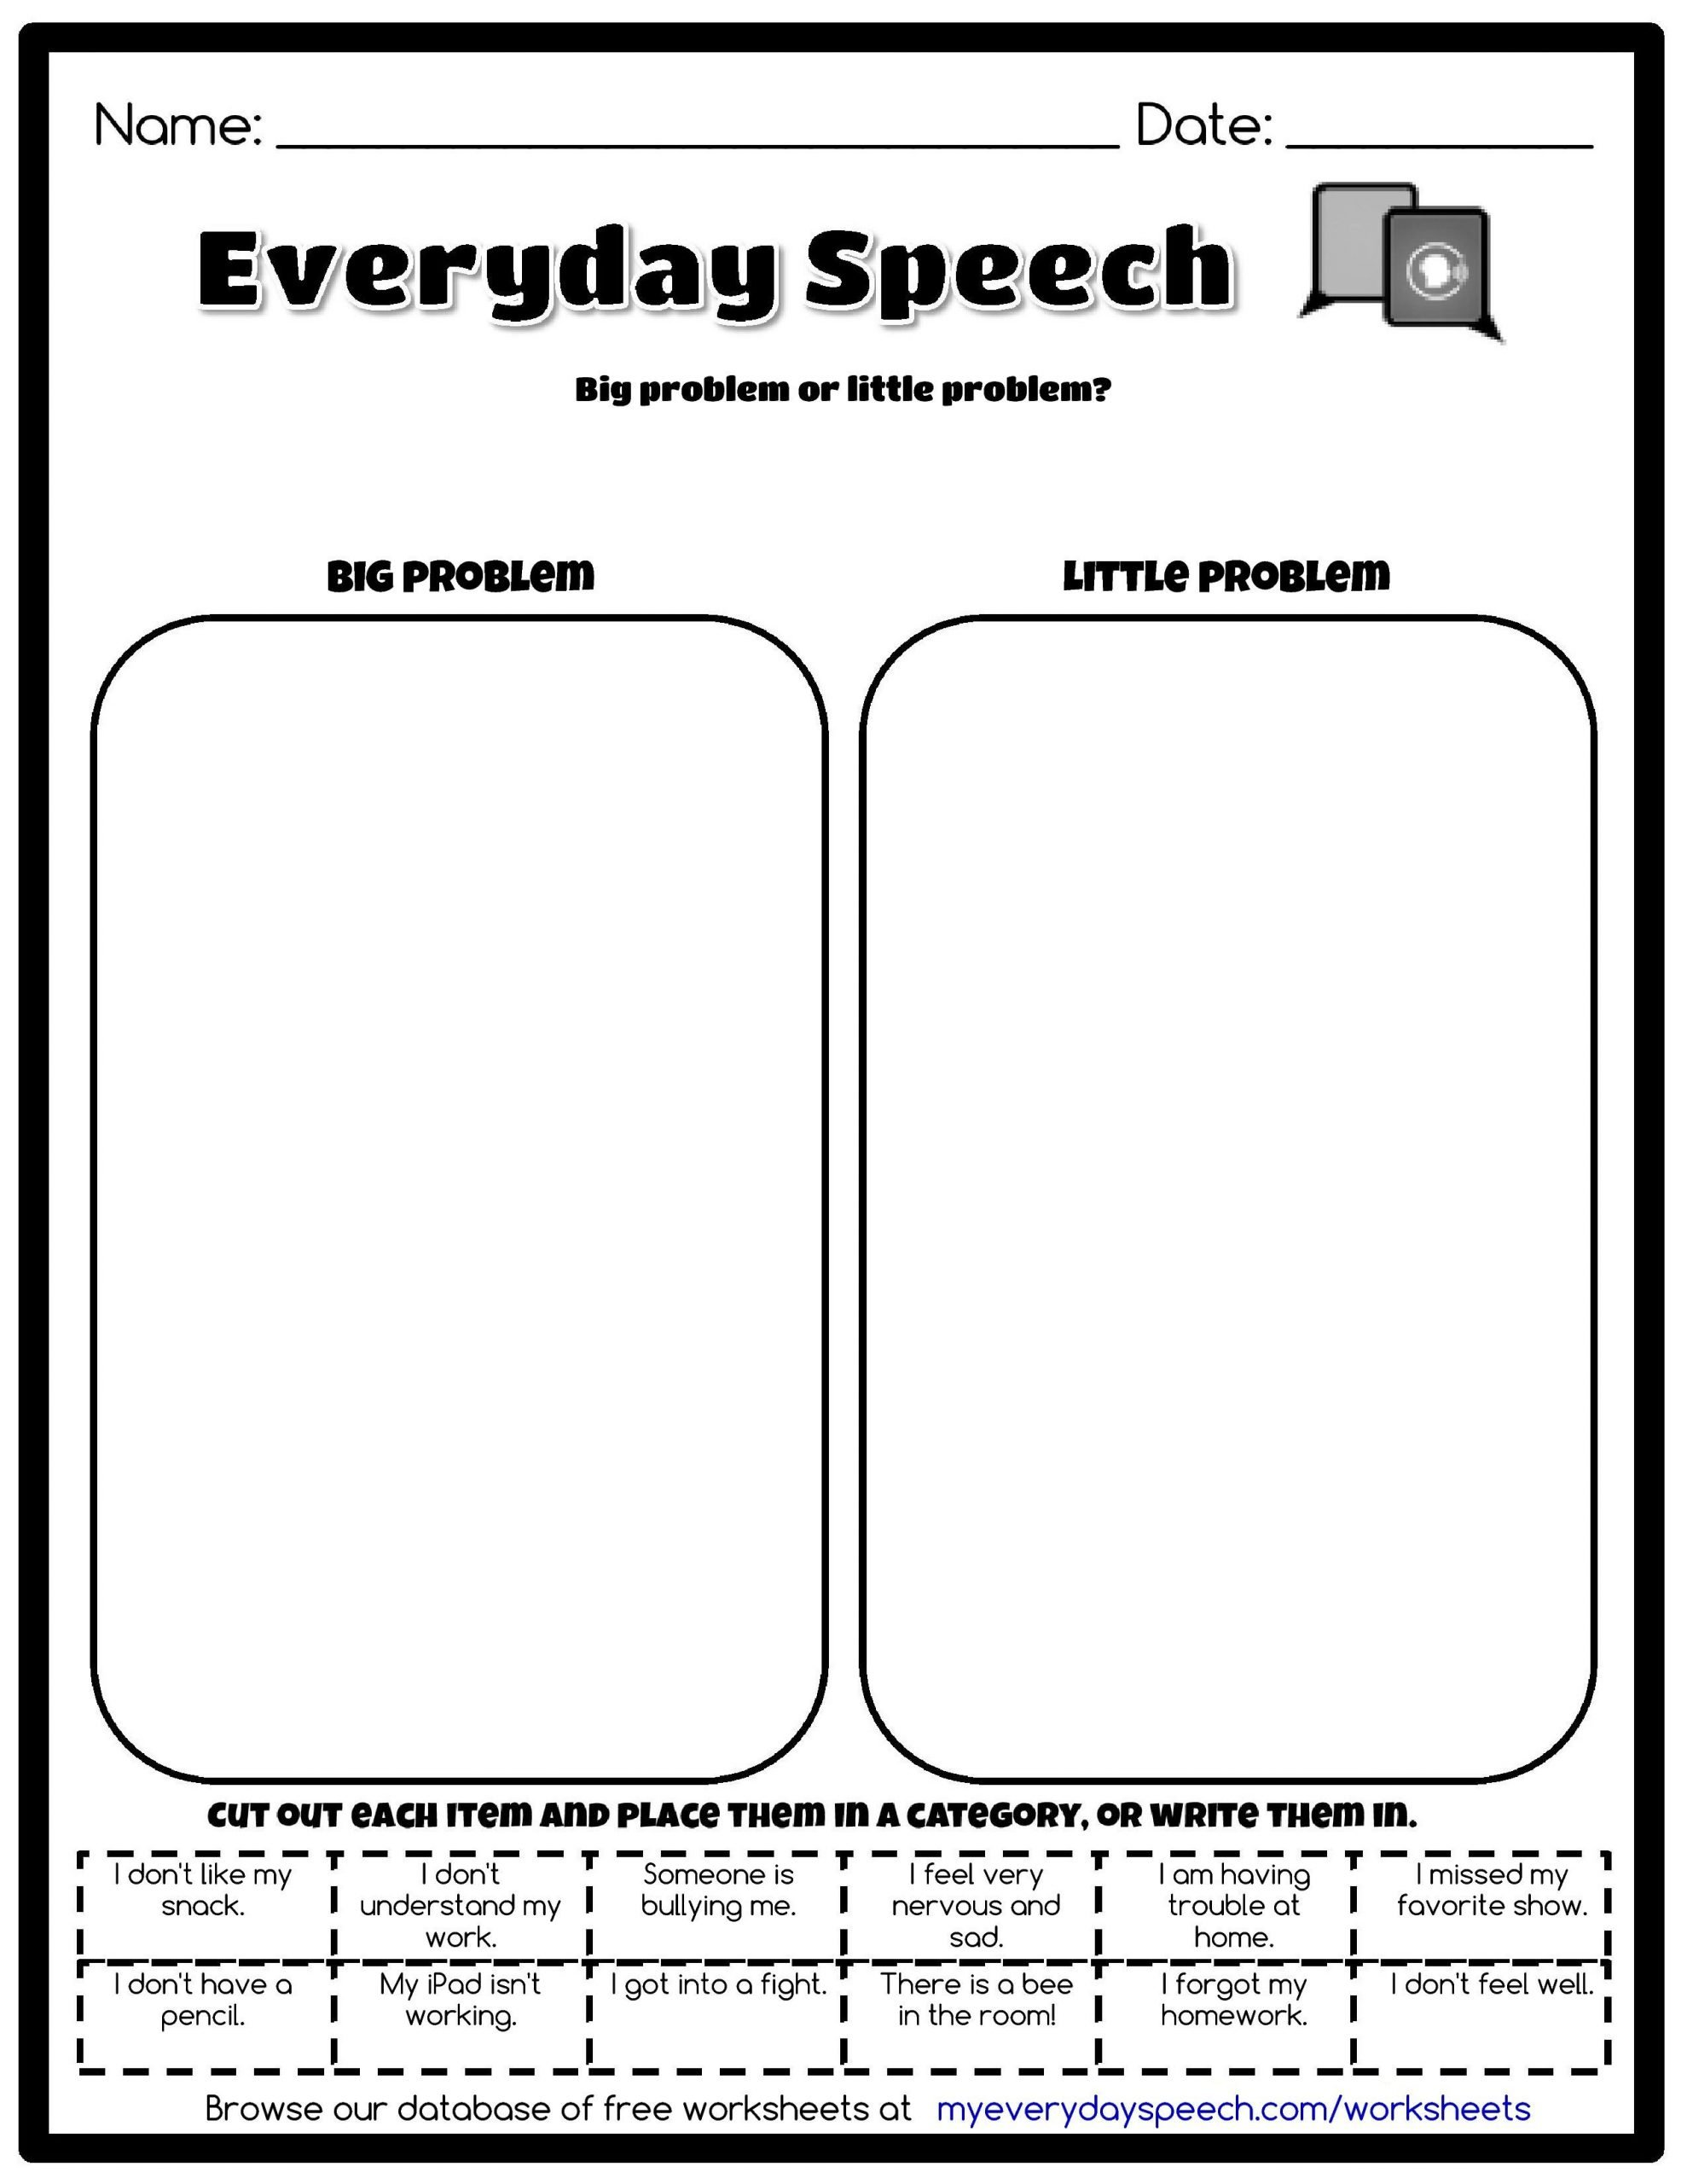 Big Vs Little Worksheets Check Out the Worksheet I Just Made Using Everyday Speech&